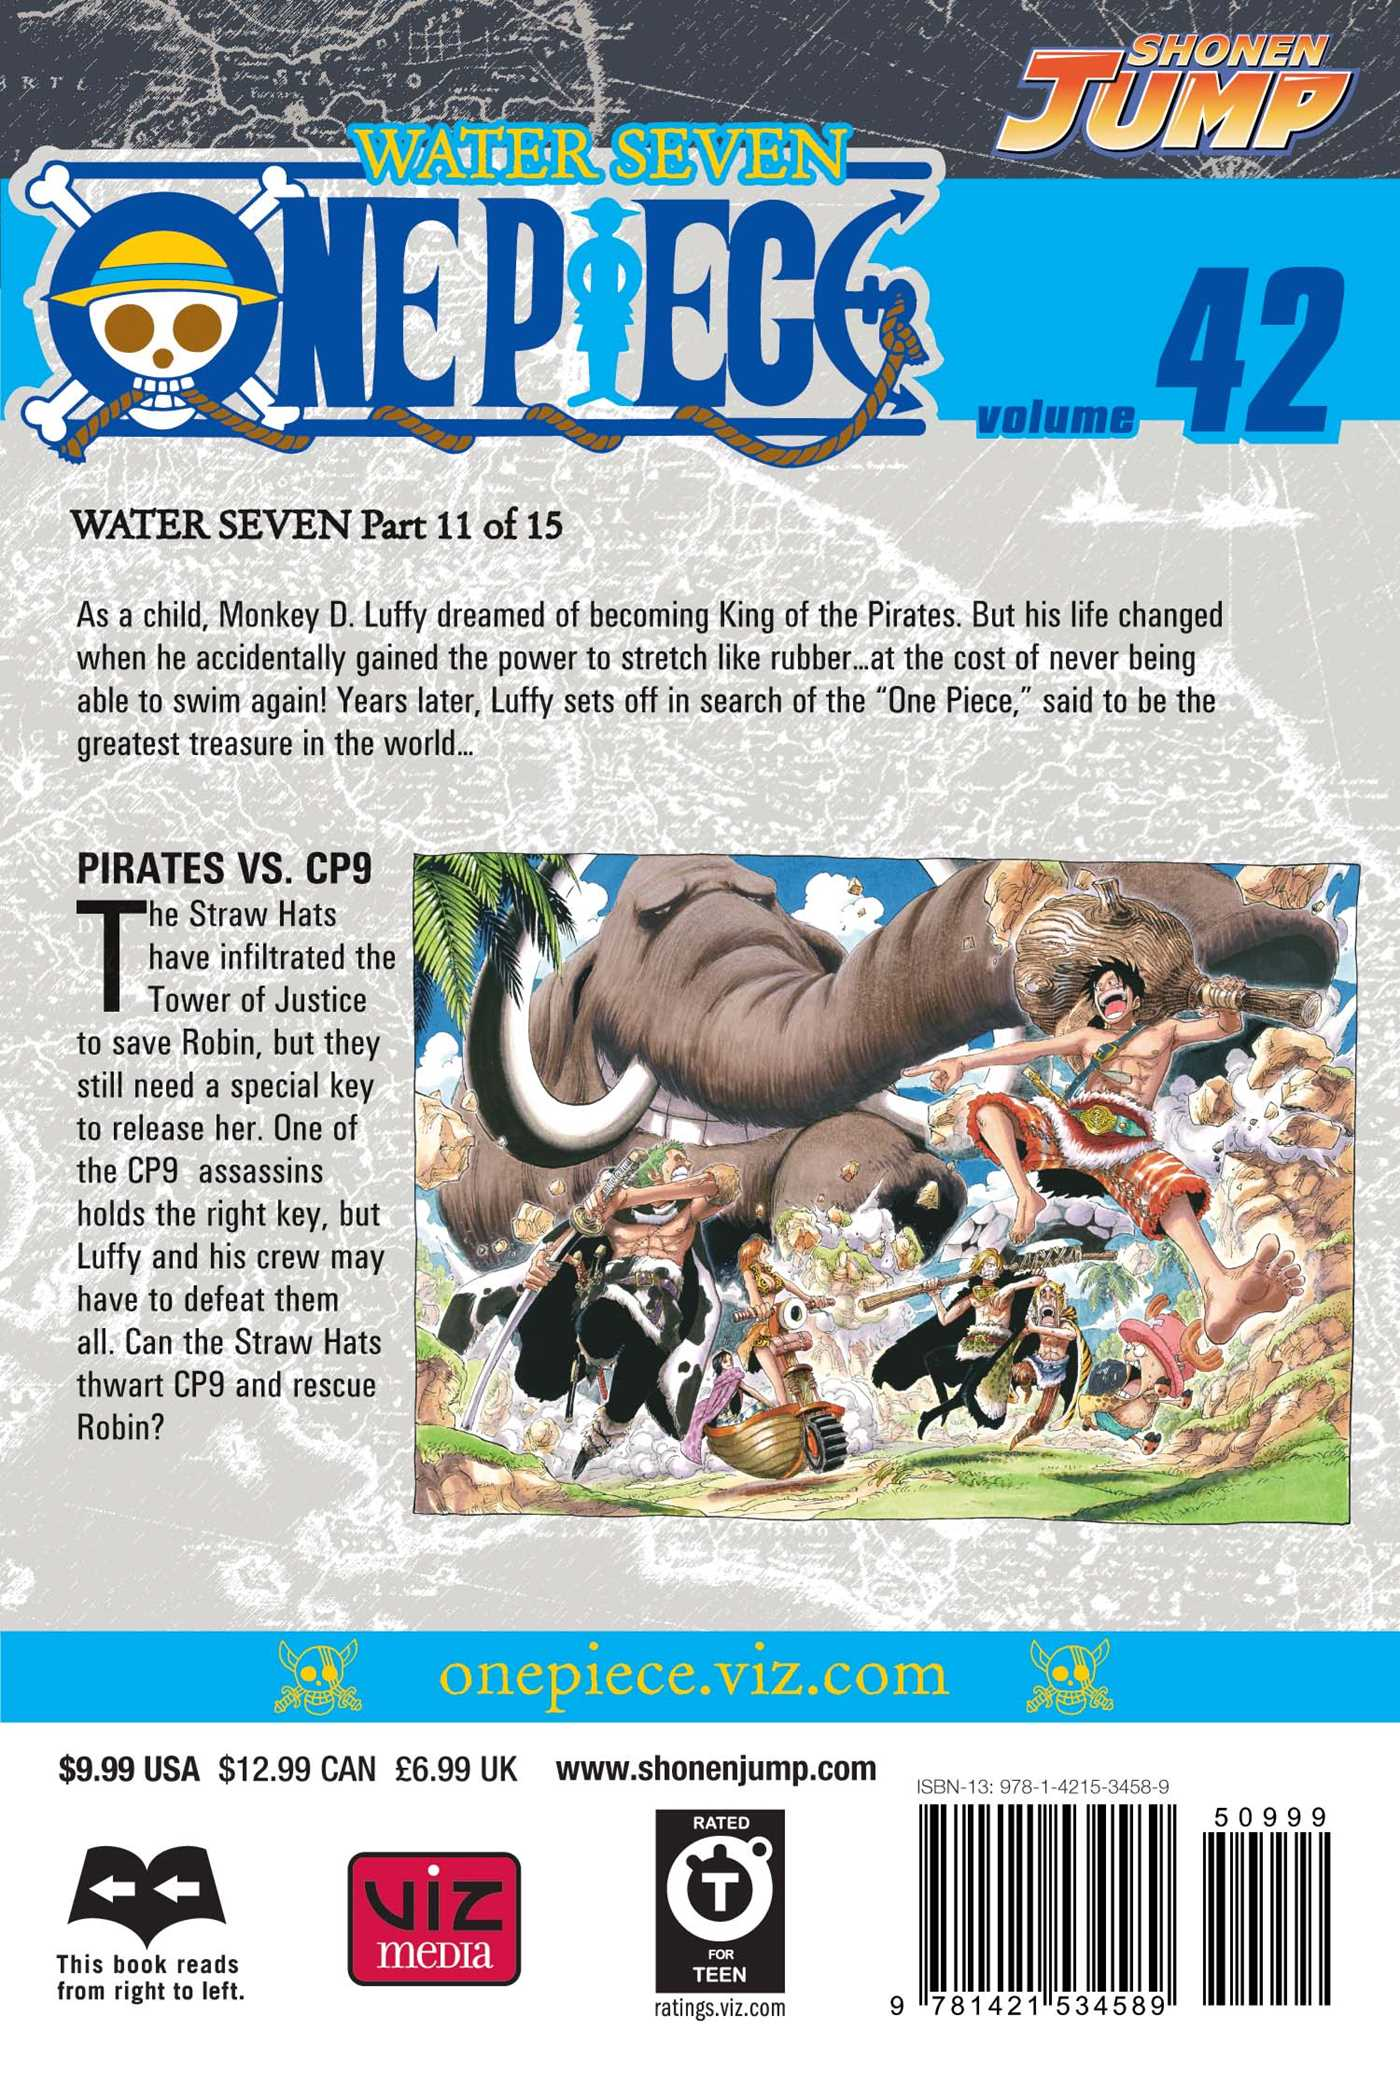 One piece vol 42 9781421534589 hr back